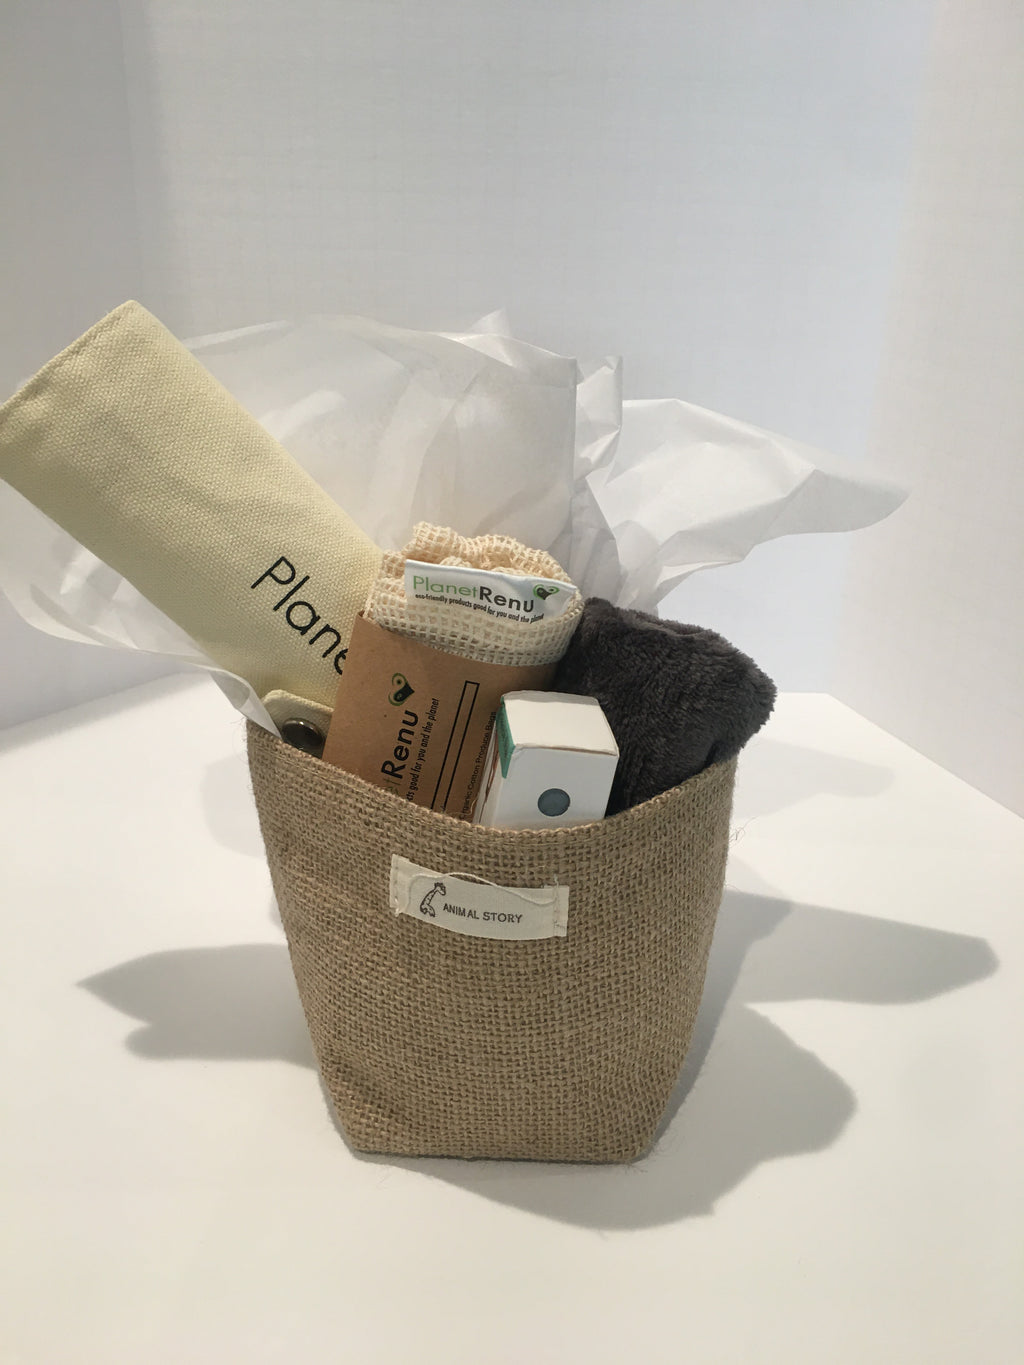 Eco Basket bamboo cutlery, bamboo cloth, organic cotton produce bag, reusable straw